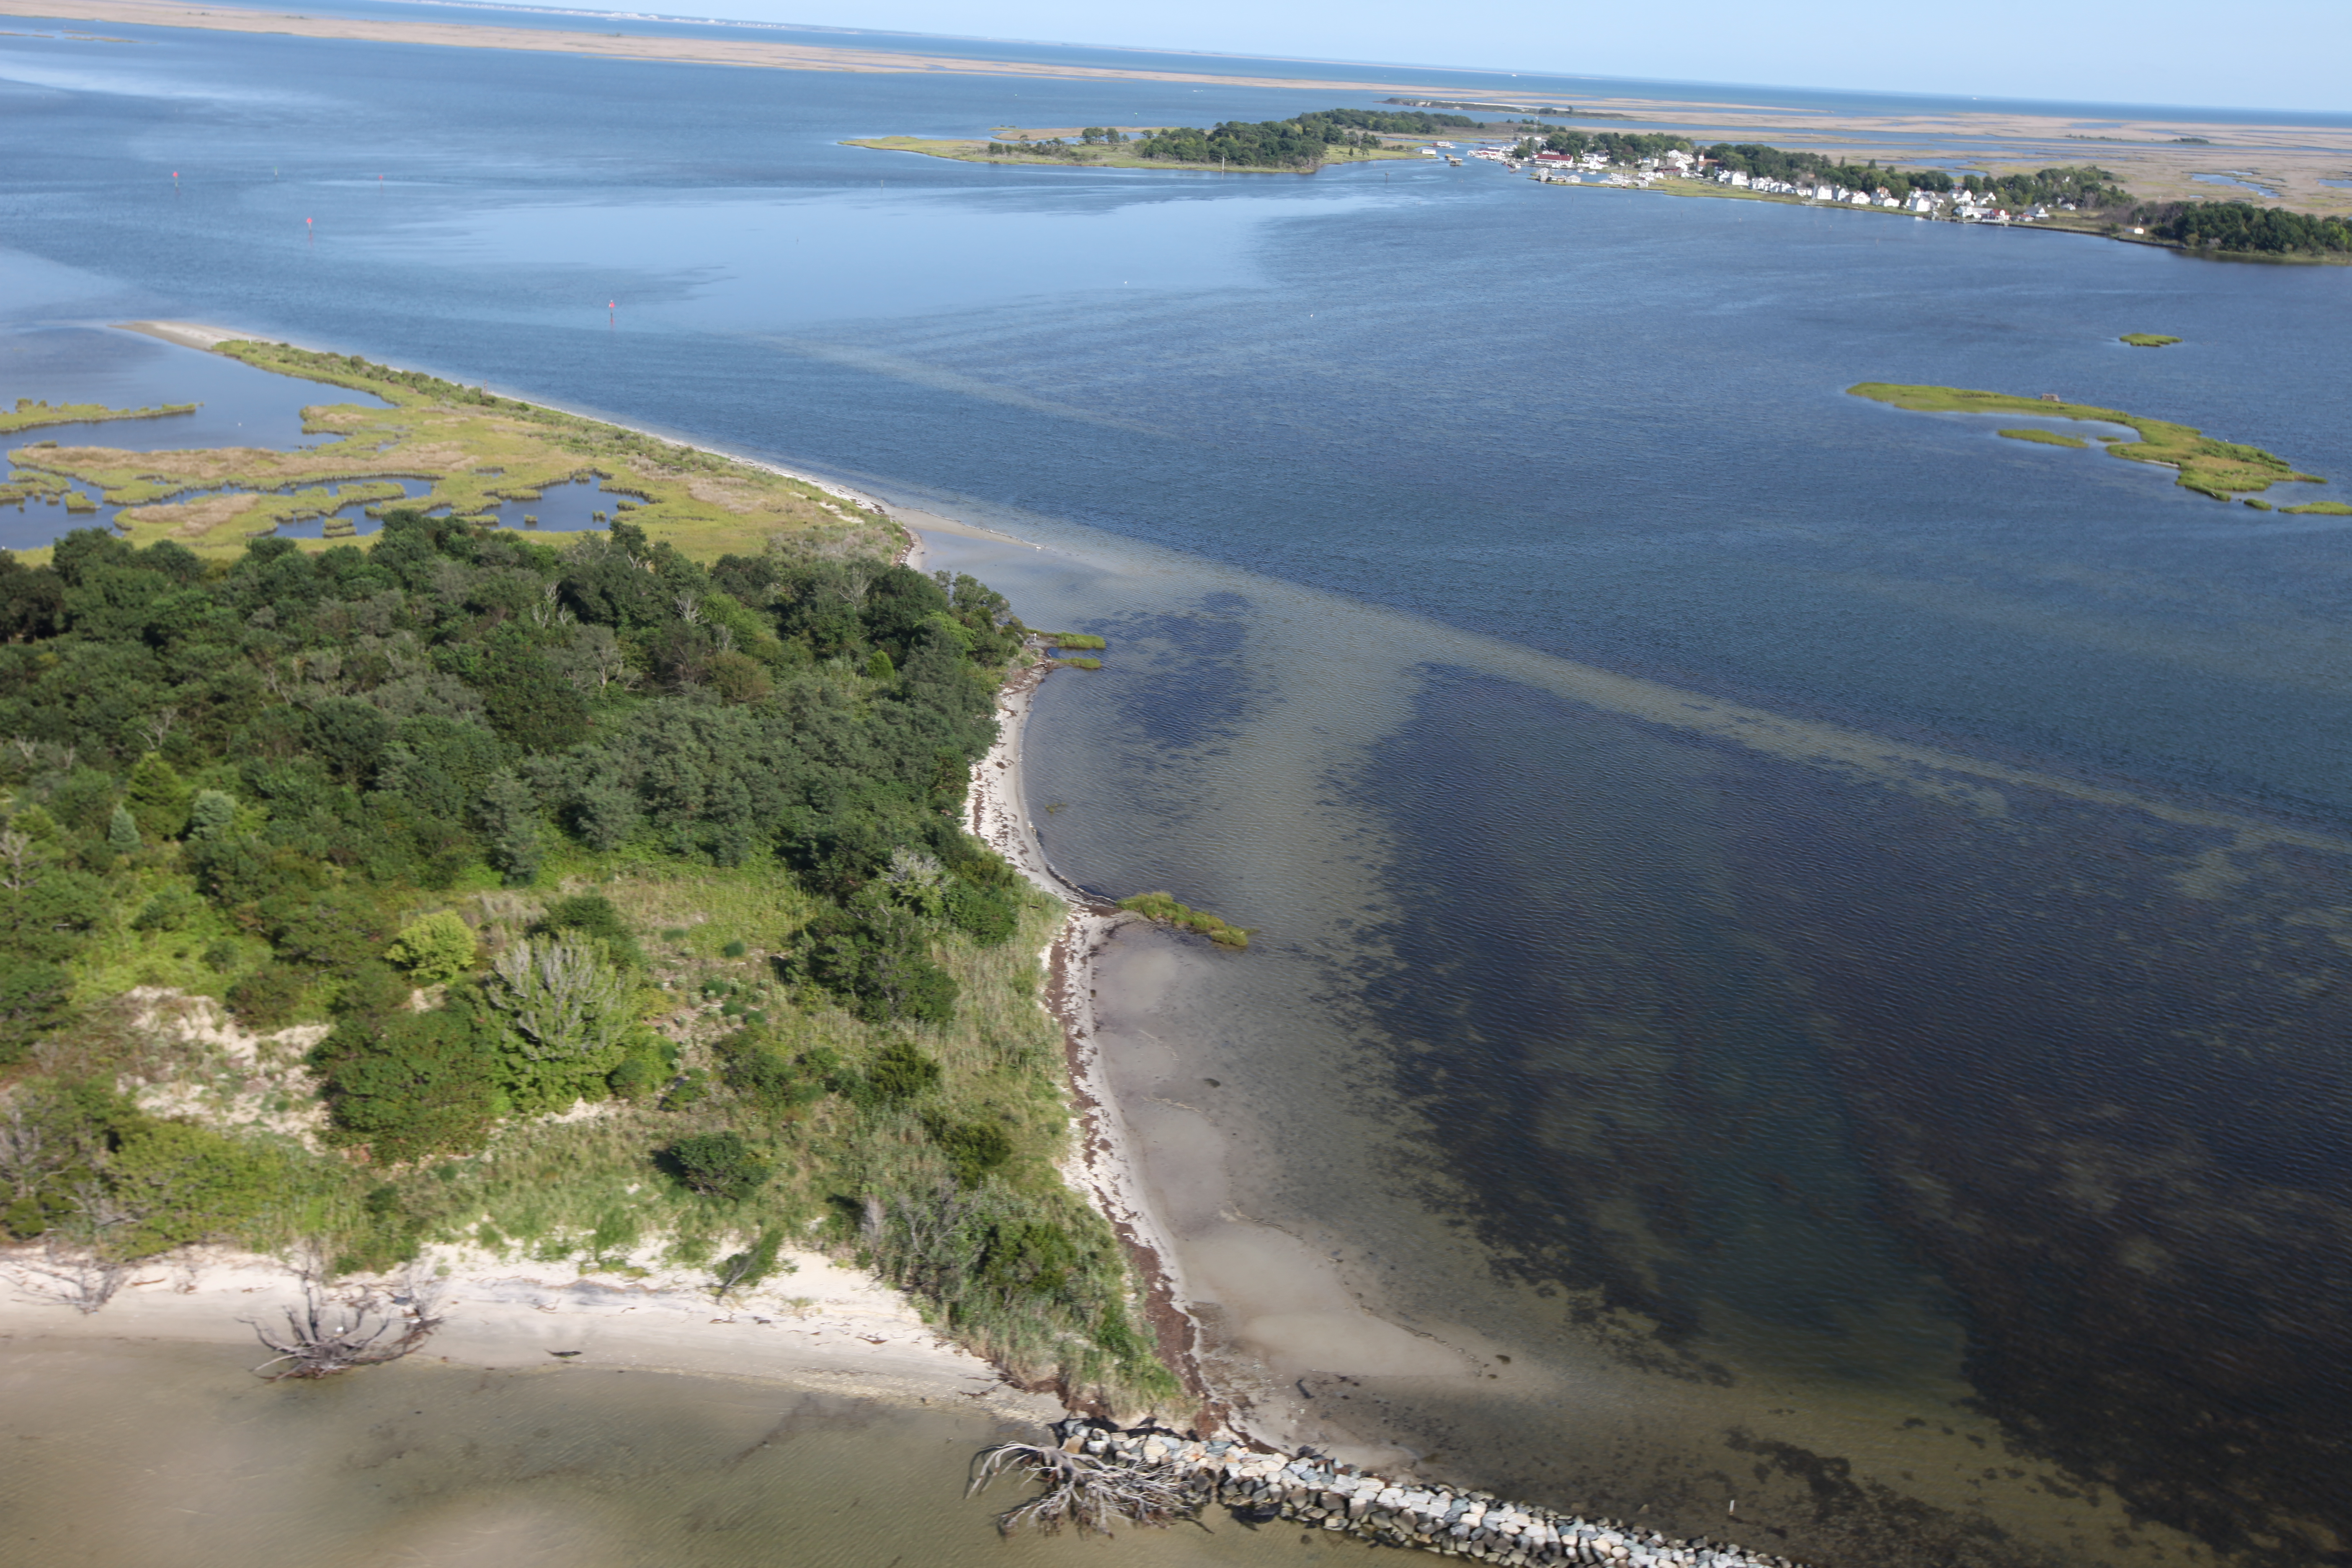 Fog Point in Smith Island, Md., where a $9 million living shoreline project is working to help protect nearly 9,000 feet of shoreline from the effects of intense storms and sea-level rise.